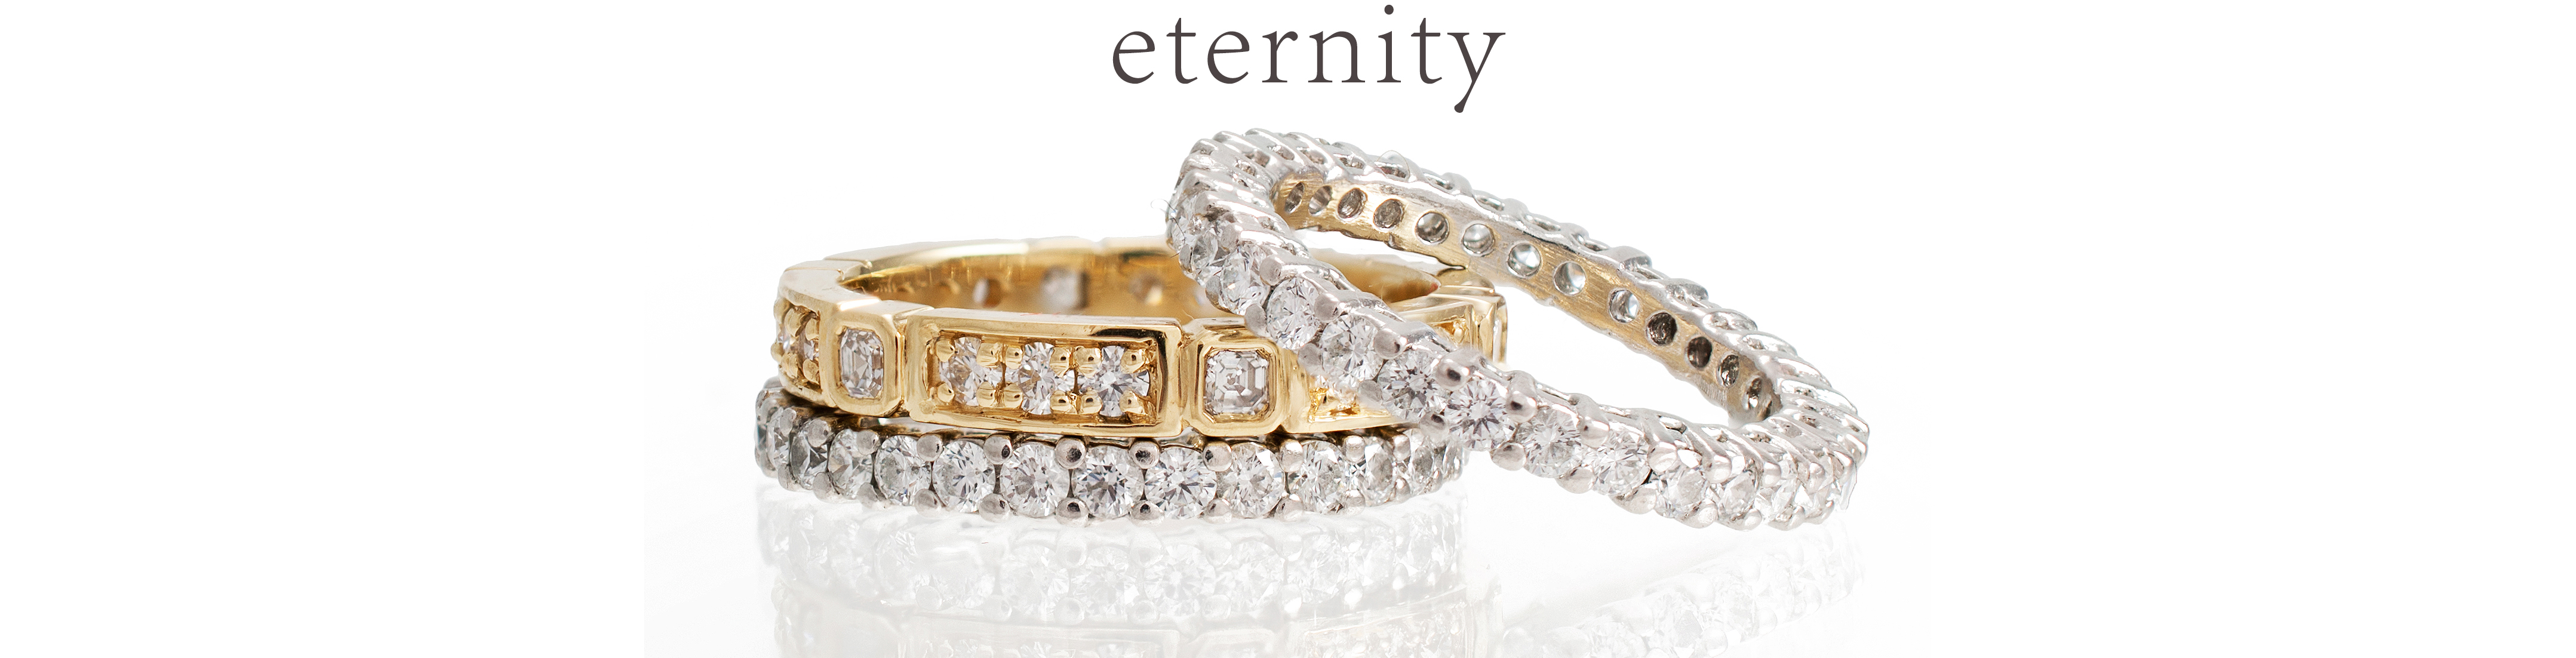 bands gold eternity to about wide rings blog everything know need white band you